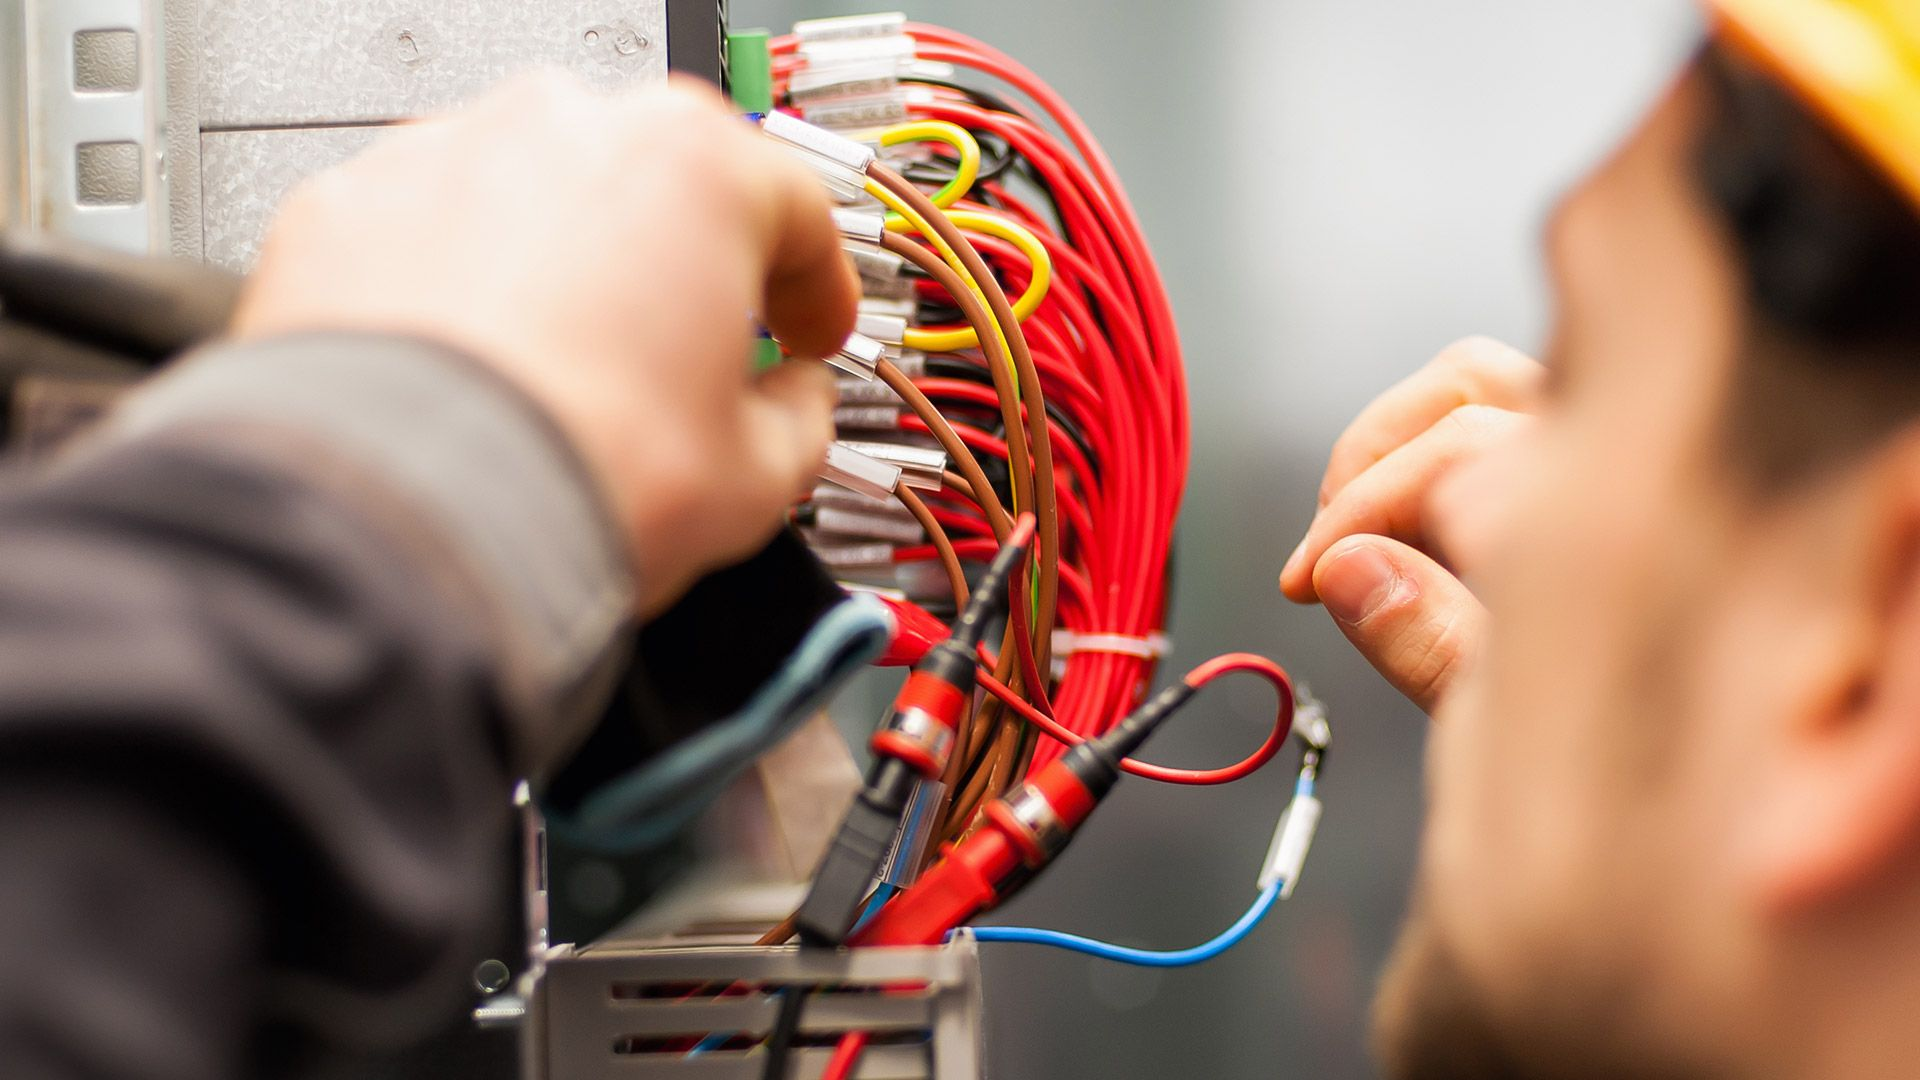 Newcastle level 2 electricians